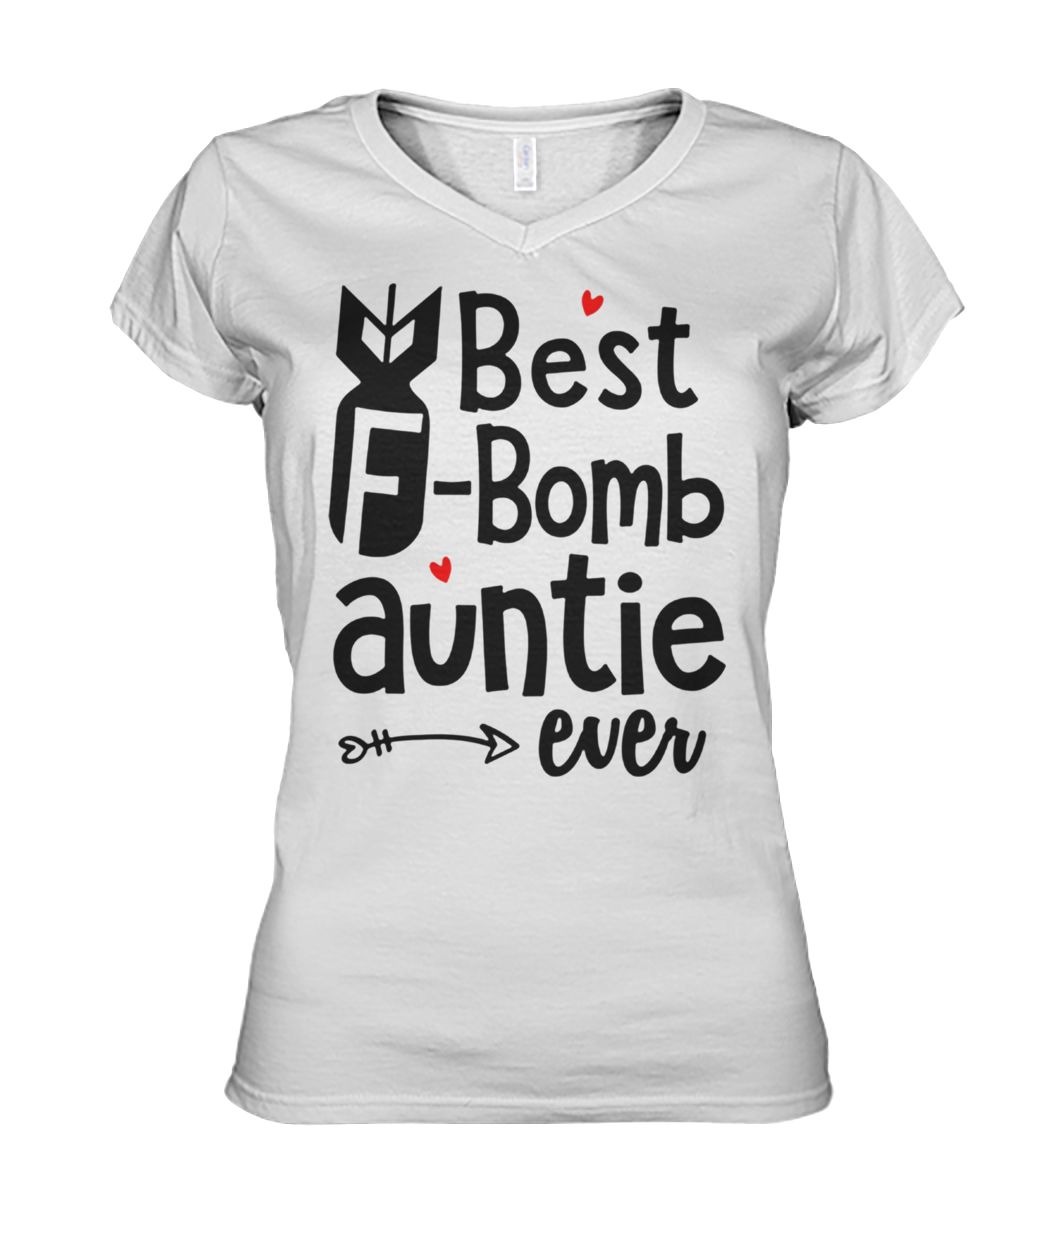 Best f-bomb auntie ever women's v-neck